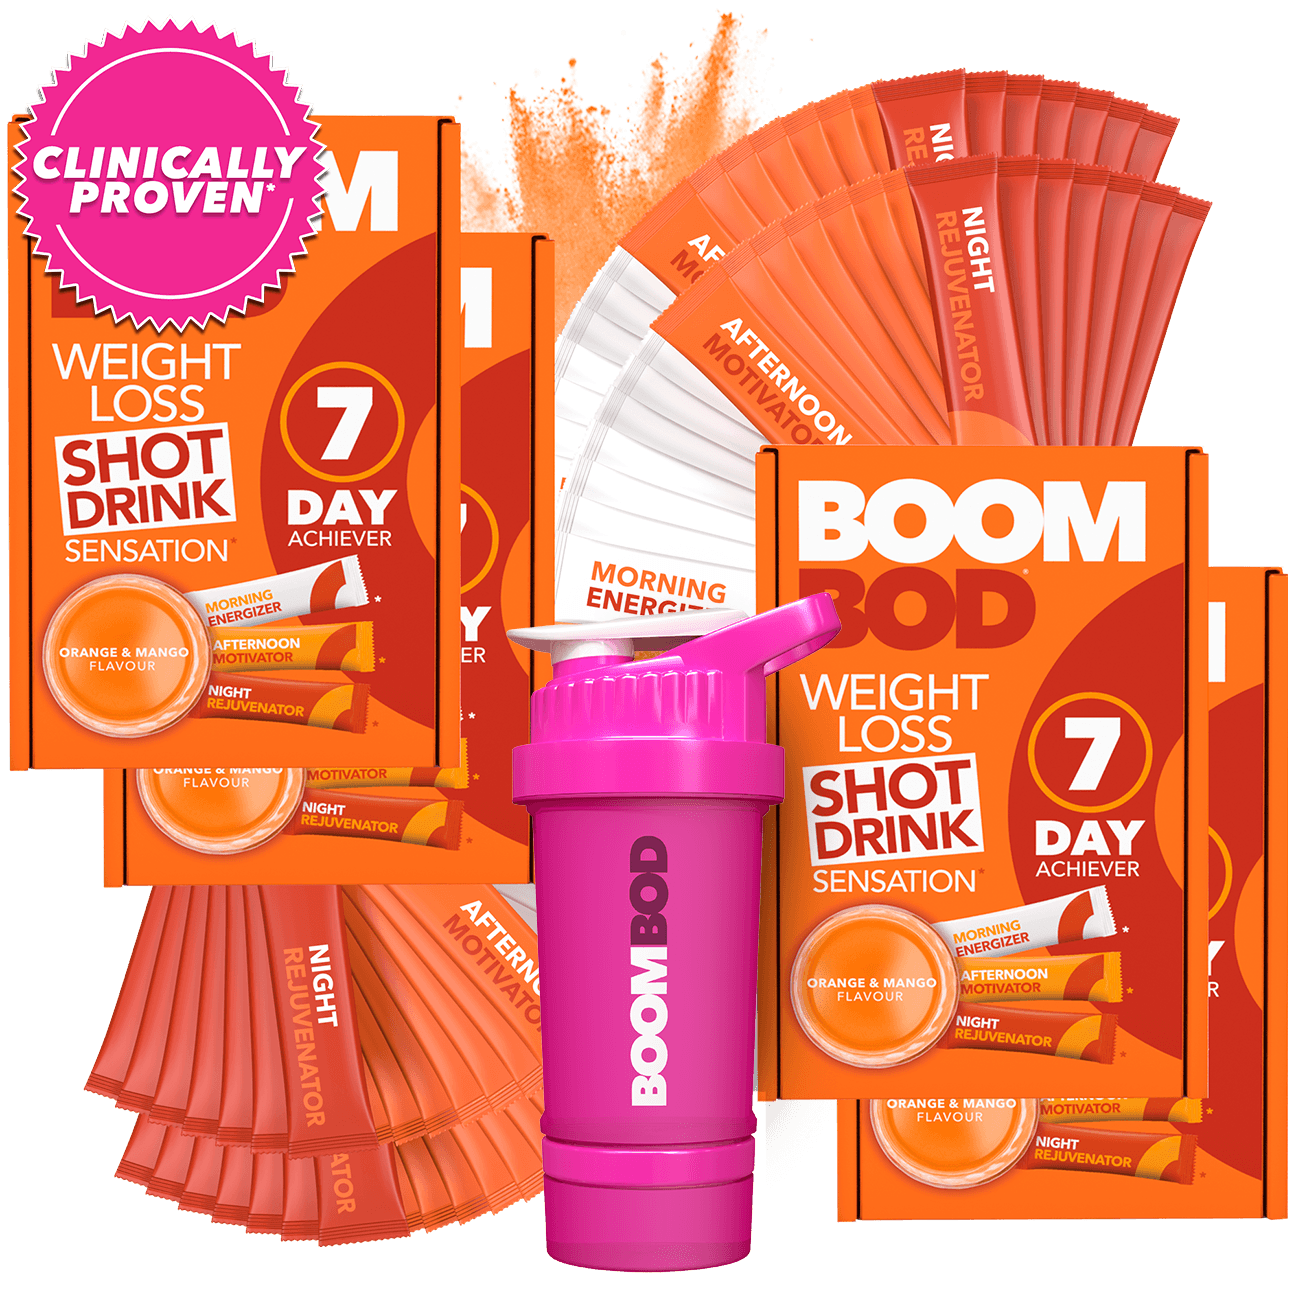 Boombod 28 Day Achiever with 20oz Pink Shaker Bottle | Orange Mango | Weight Loss Shot Drink